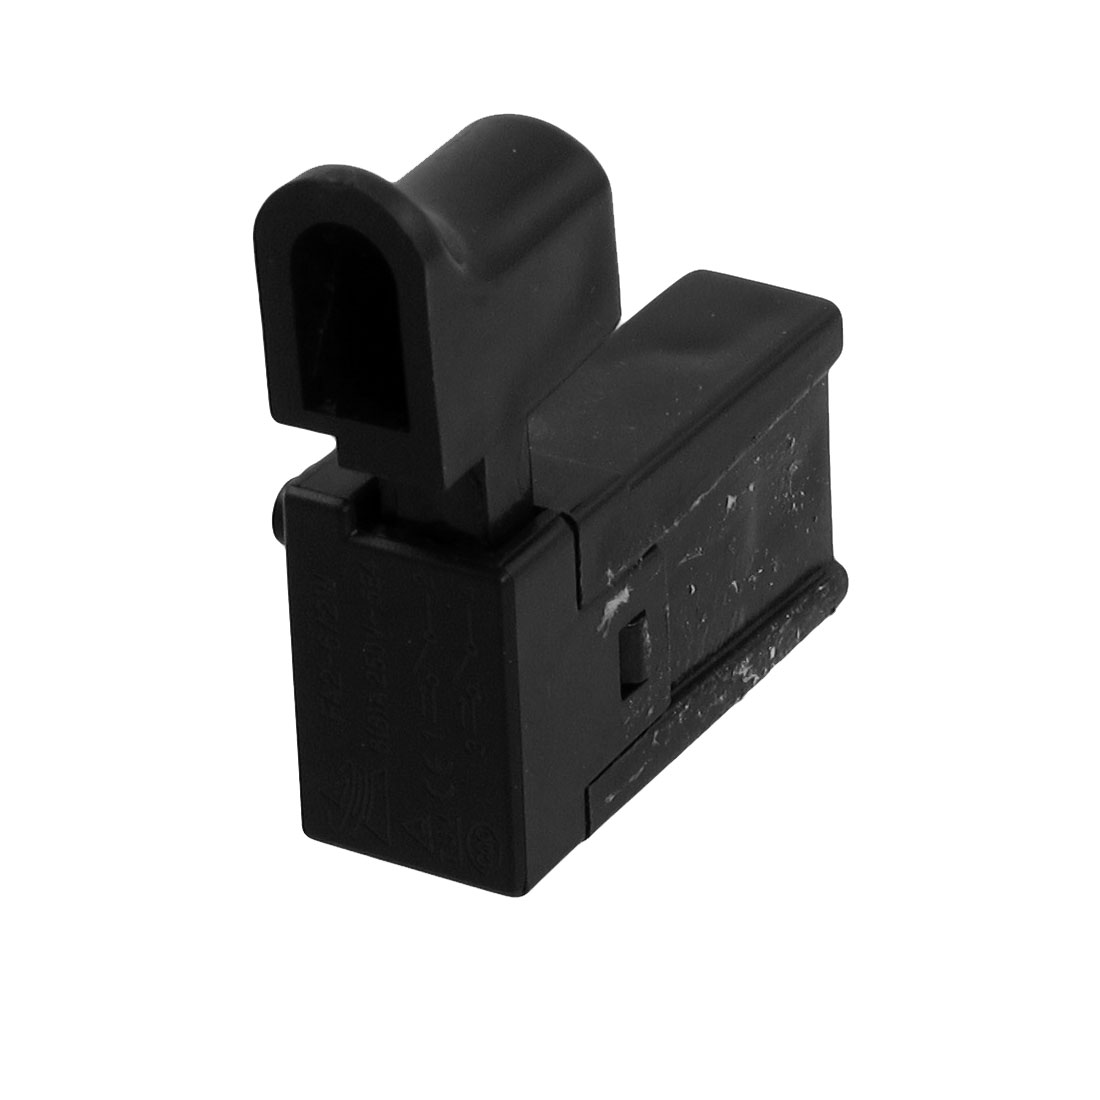 AC 250V 6A Momentary DPST NO Black Case Electric Tool Trigger Switch